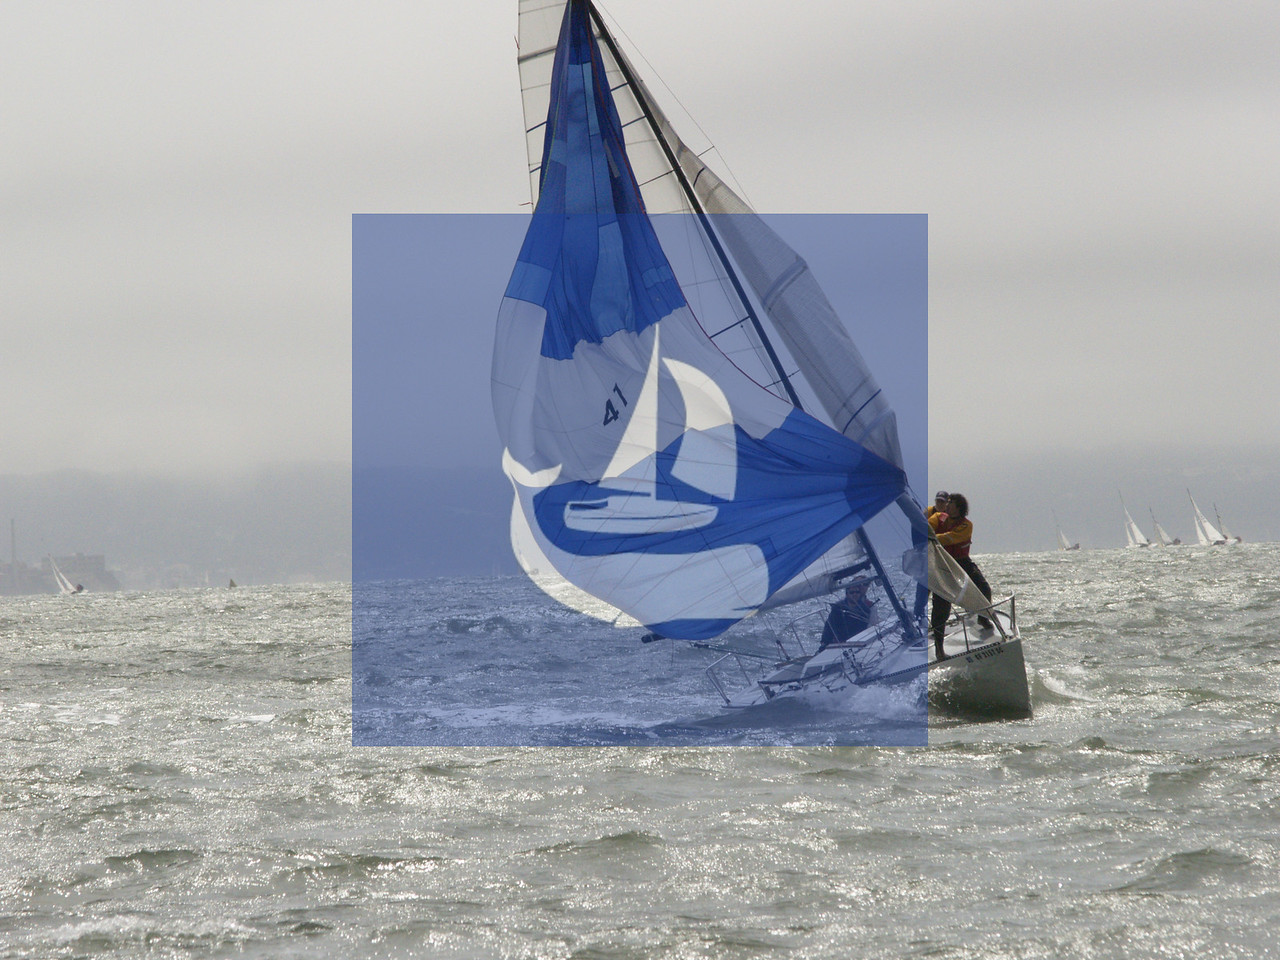 OLYMPUS DIGITAL CAMERA  Norcalsailing.com